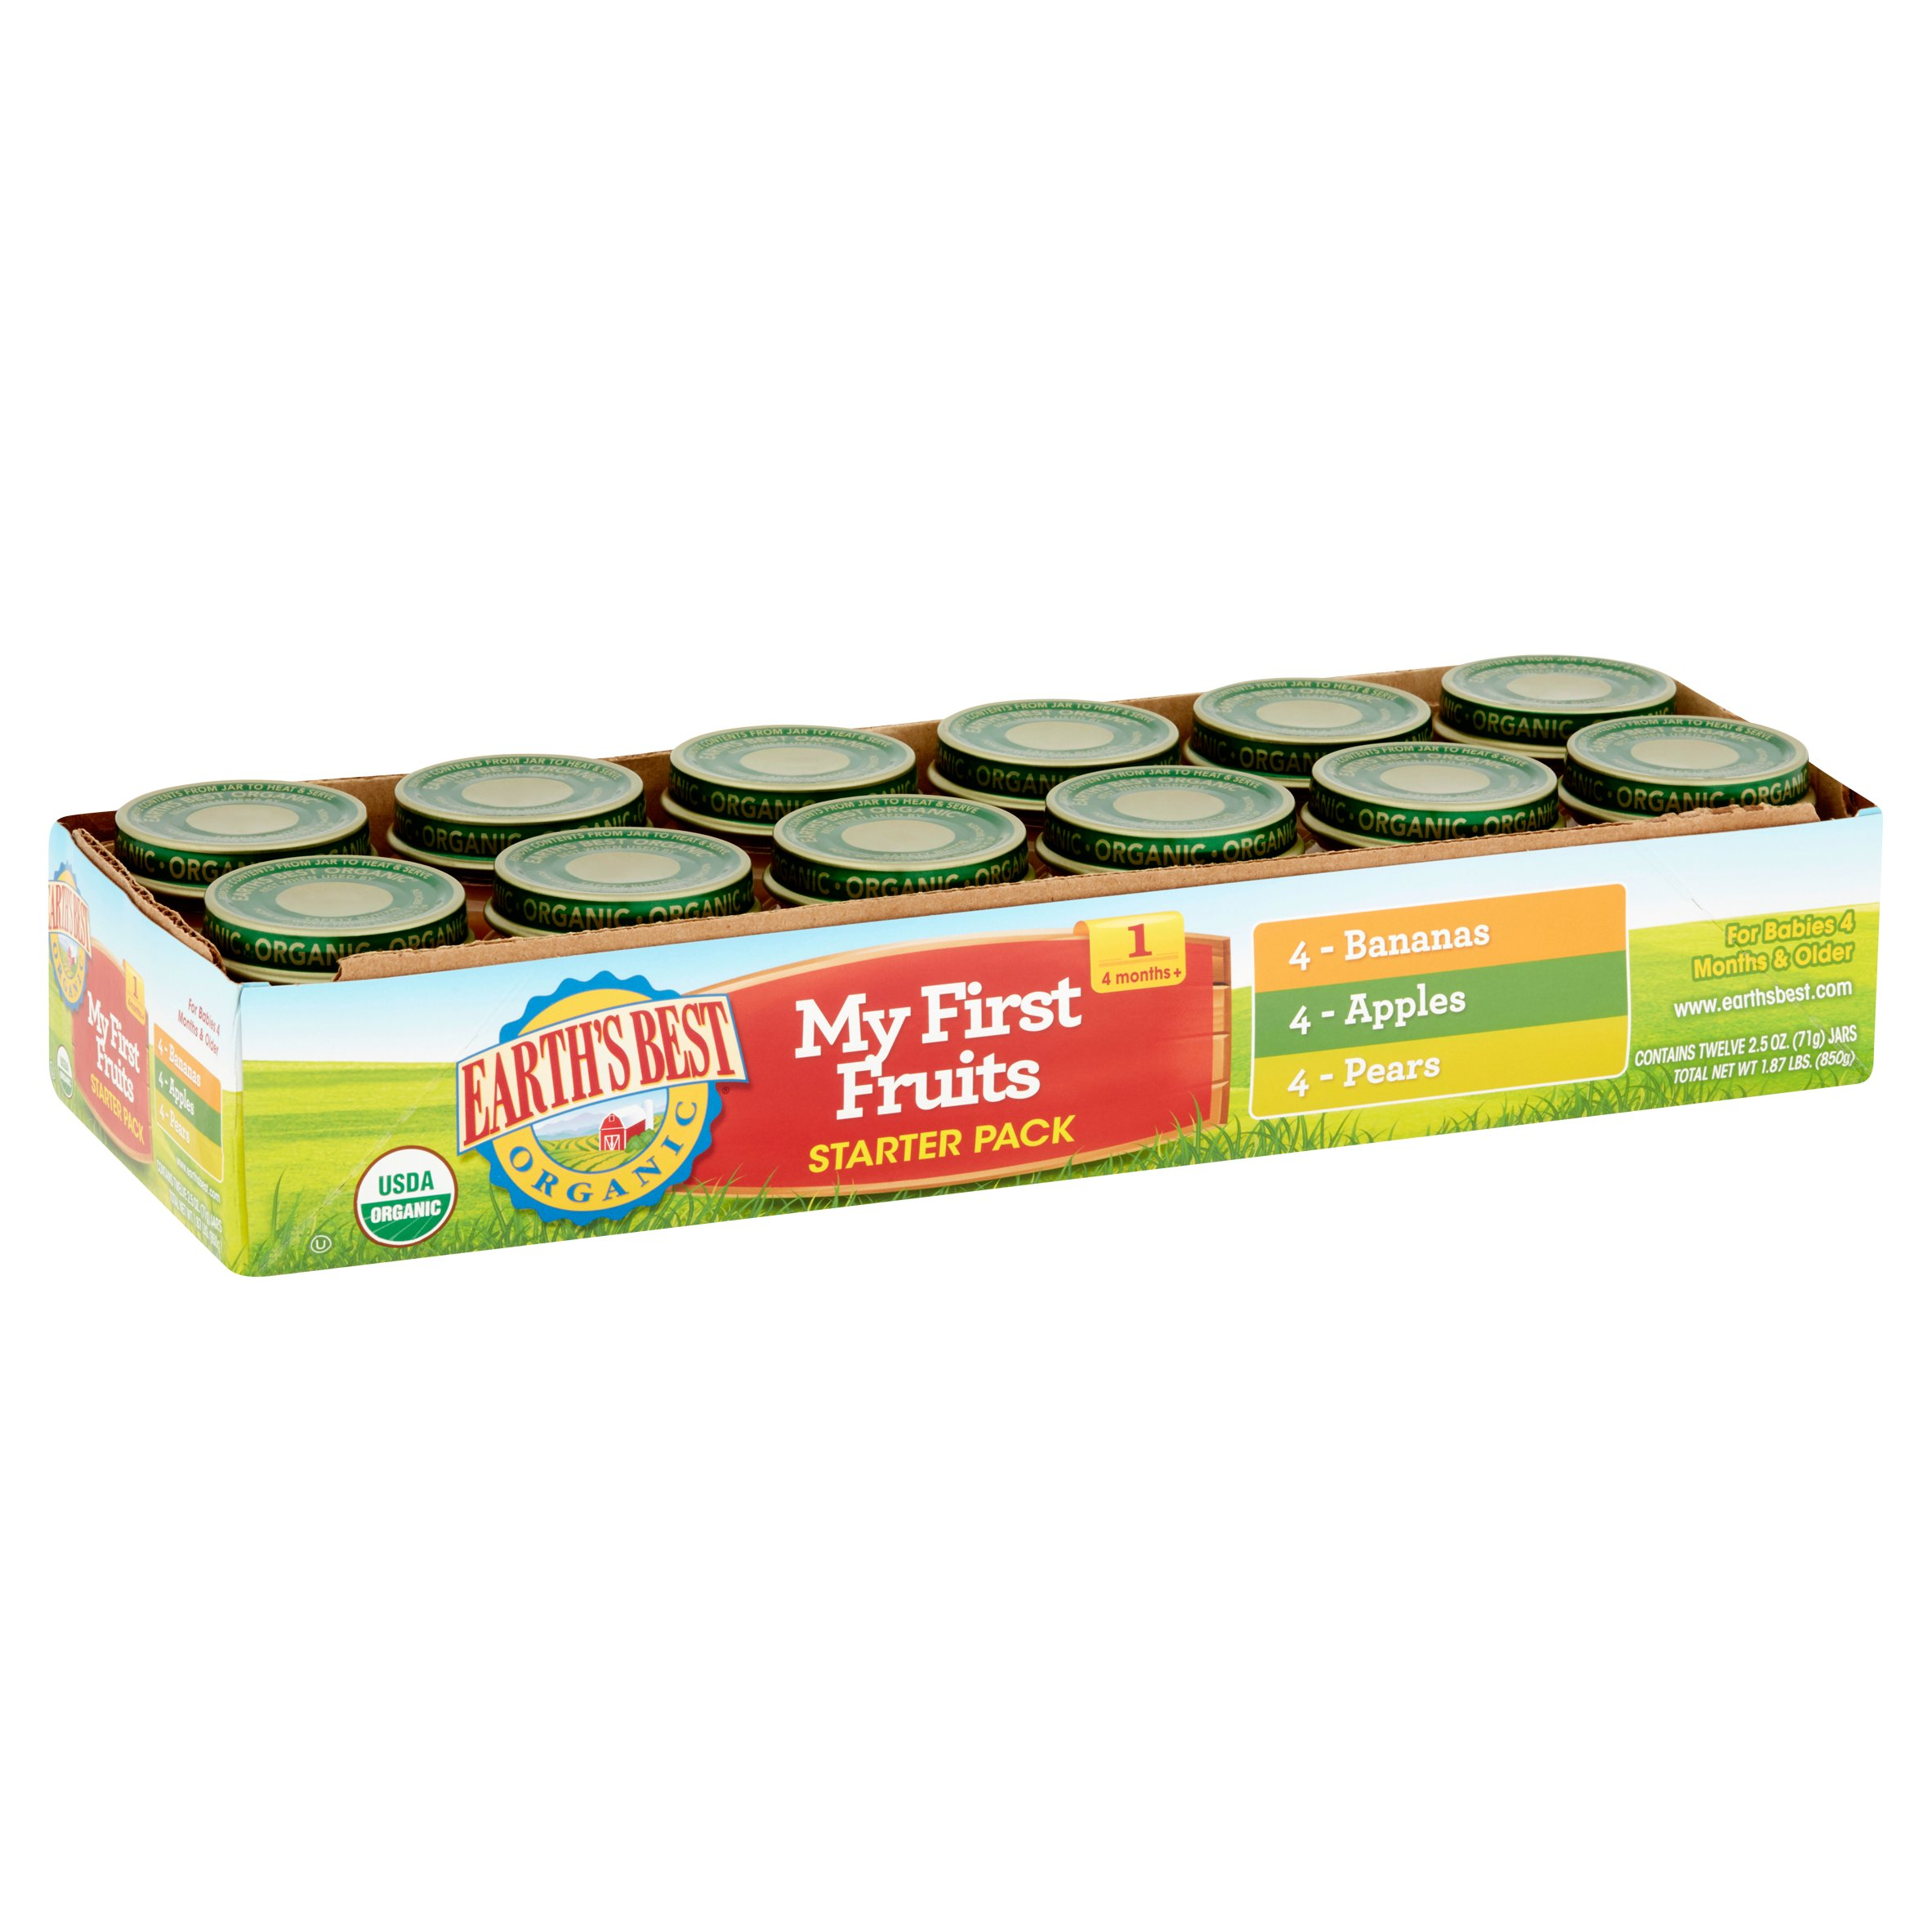 Earth's Best Organic My First Fruits Starter Pack Organic Baby Food 4 Months+, 12 count, 2.5 oz